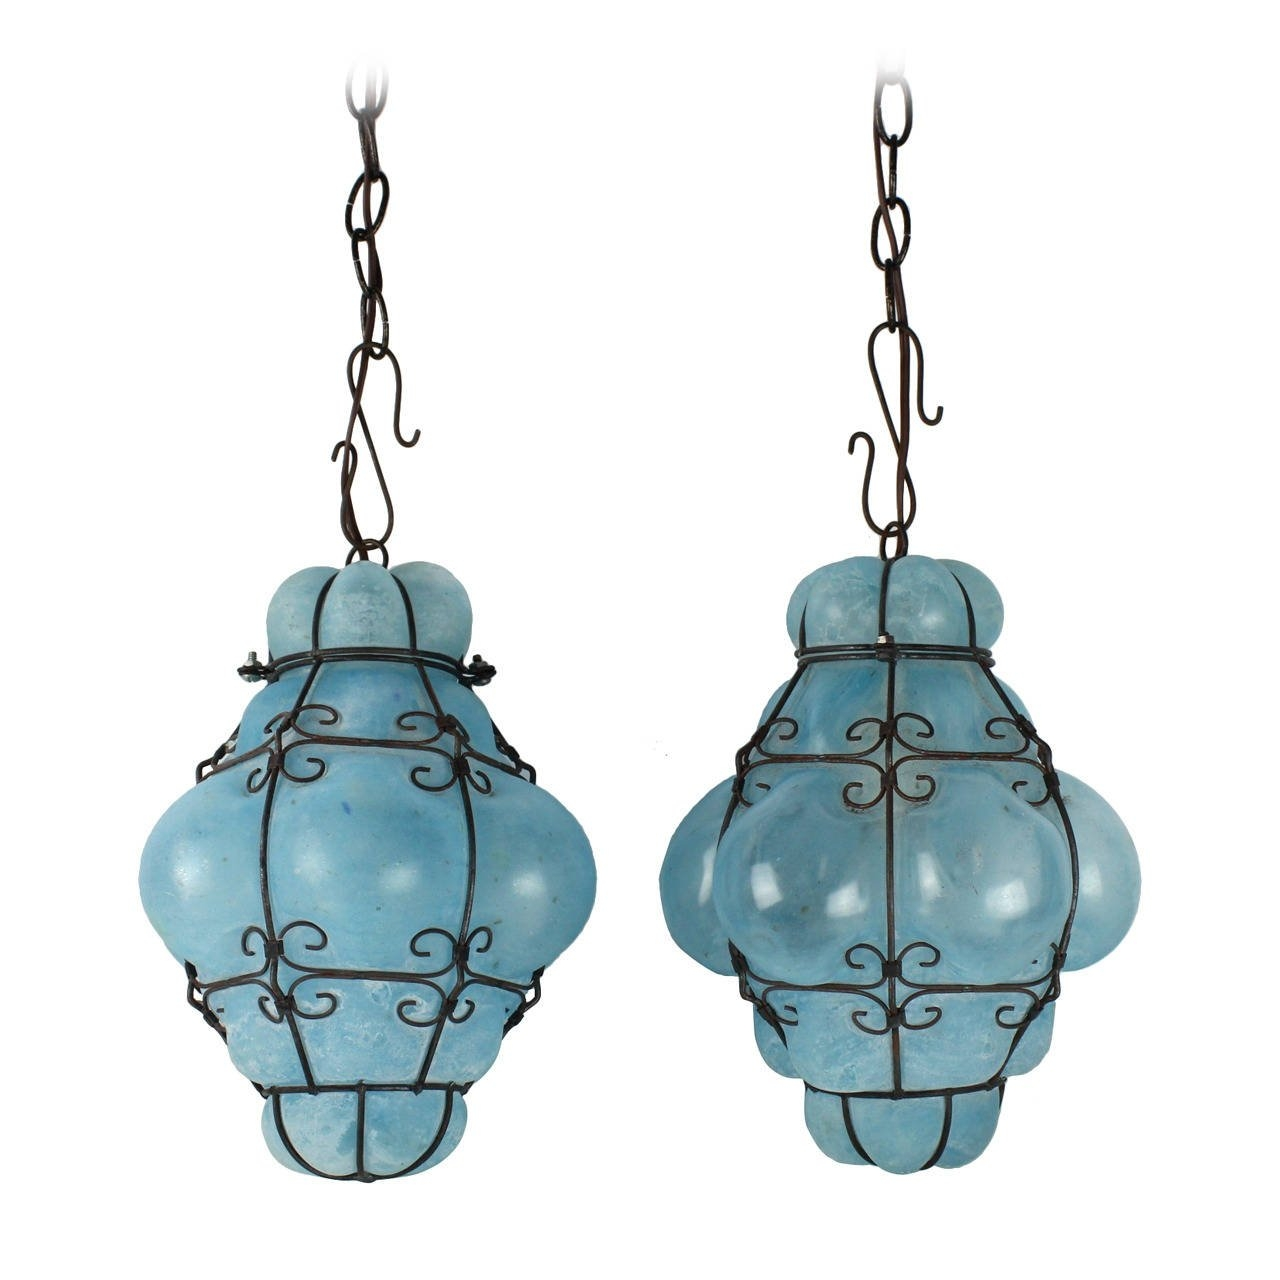 Vintage Seguso Murano Blue Glass Cage Pendant Lights At 1stdibs Intended For Turquoise Blue Glass Chandeliers (Image 24 of 25)